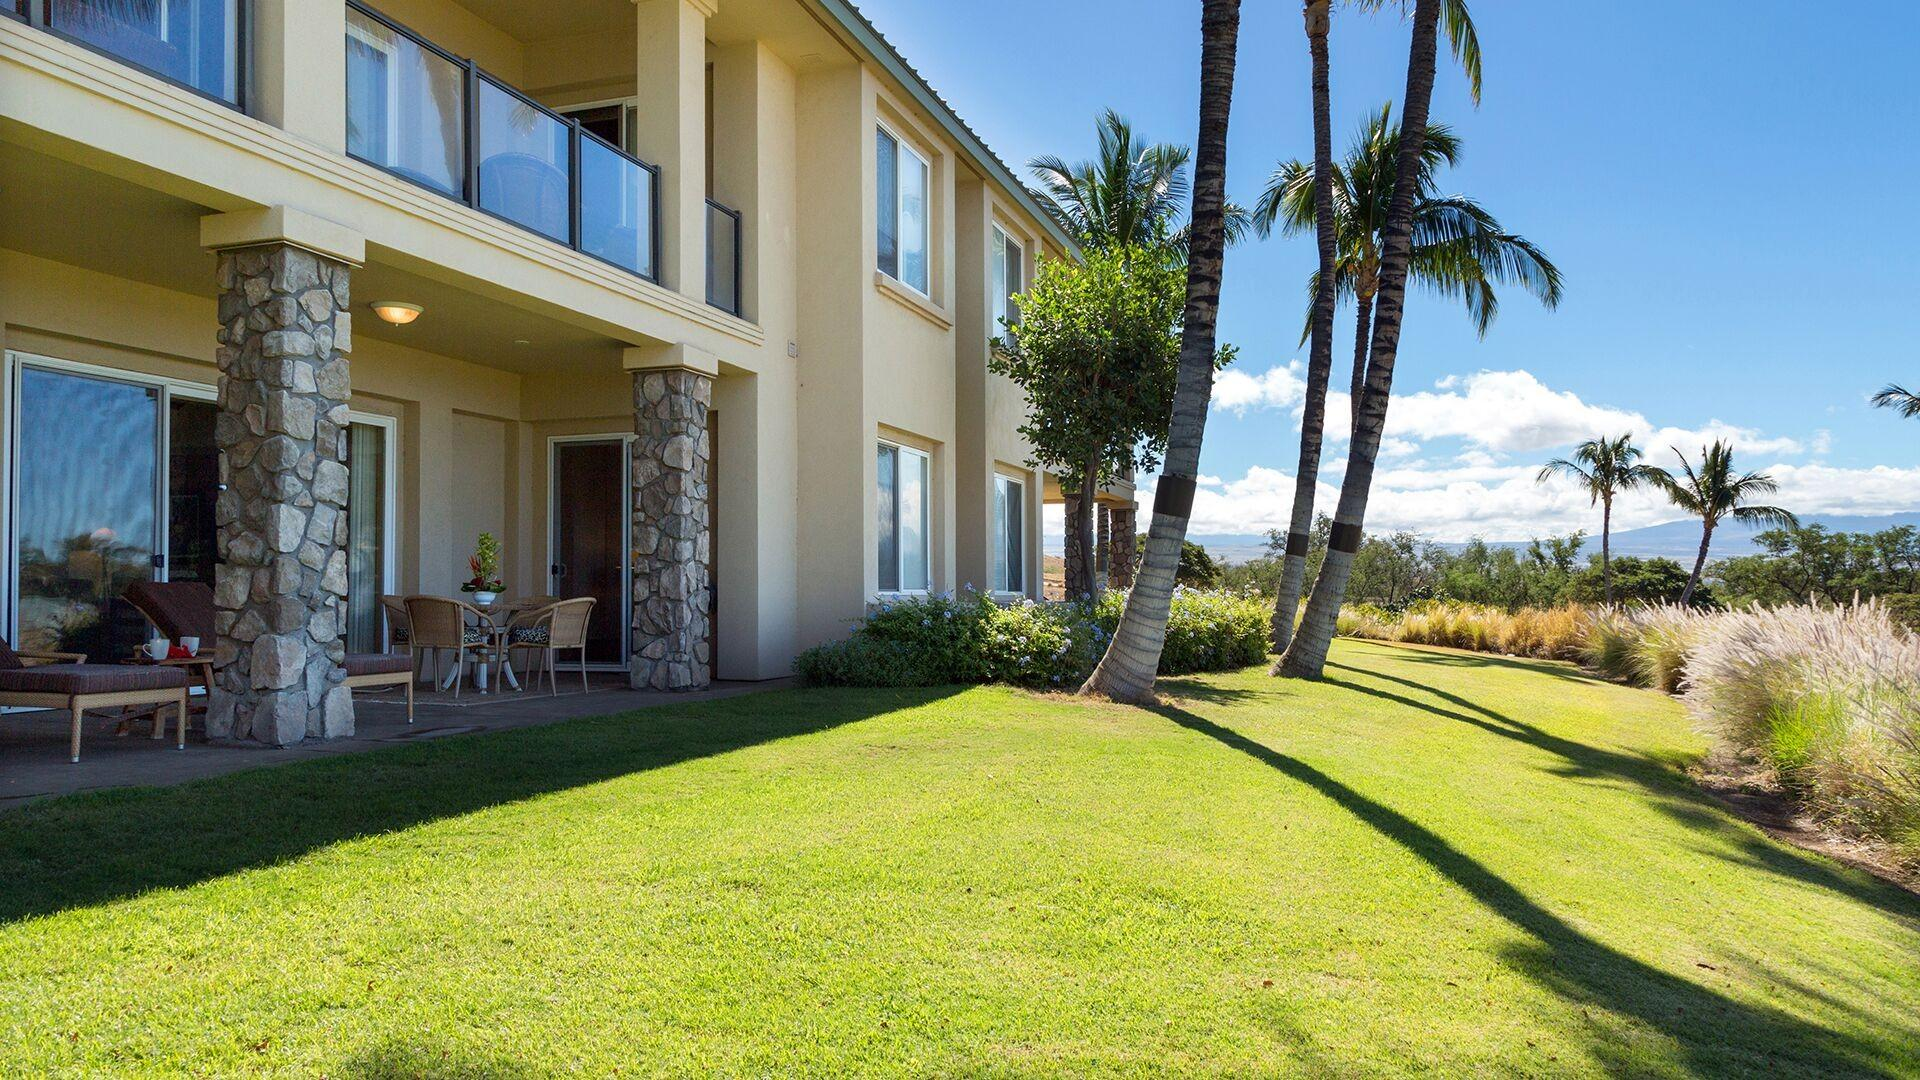 A large grassy in front of your private lanai for your kids to enjoy playing or an area to sunbathe in the day or stargaze at night!